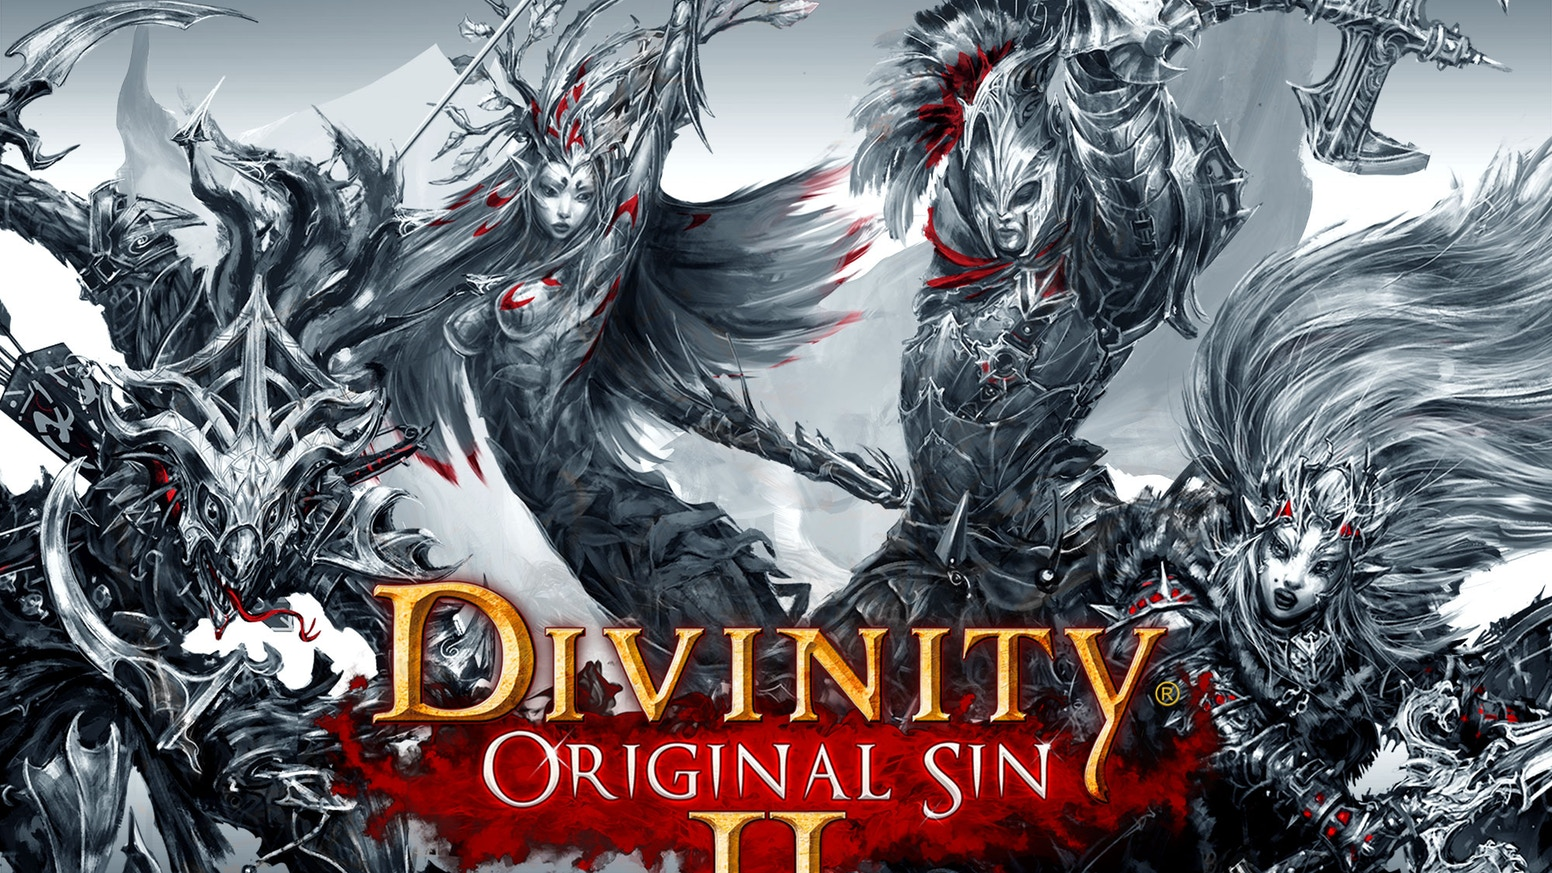 Divinity Original Sin 2 Wallpapers High Quality Download Free